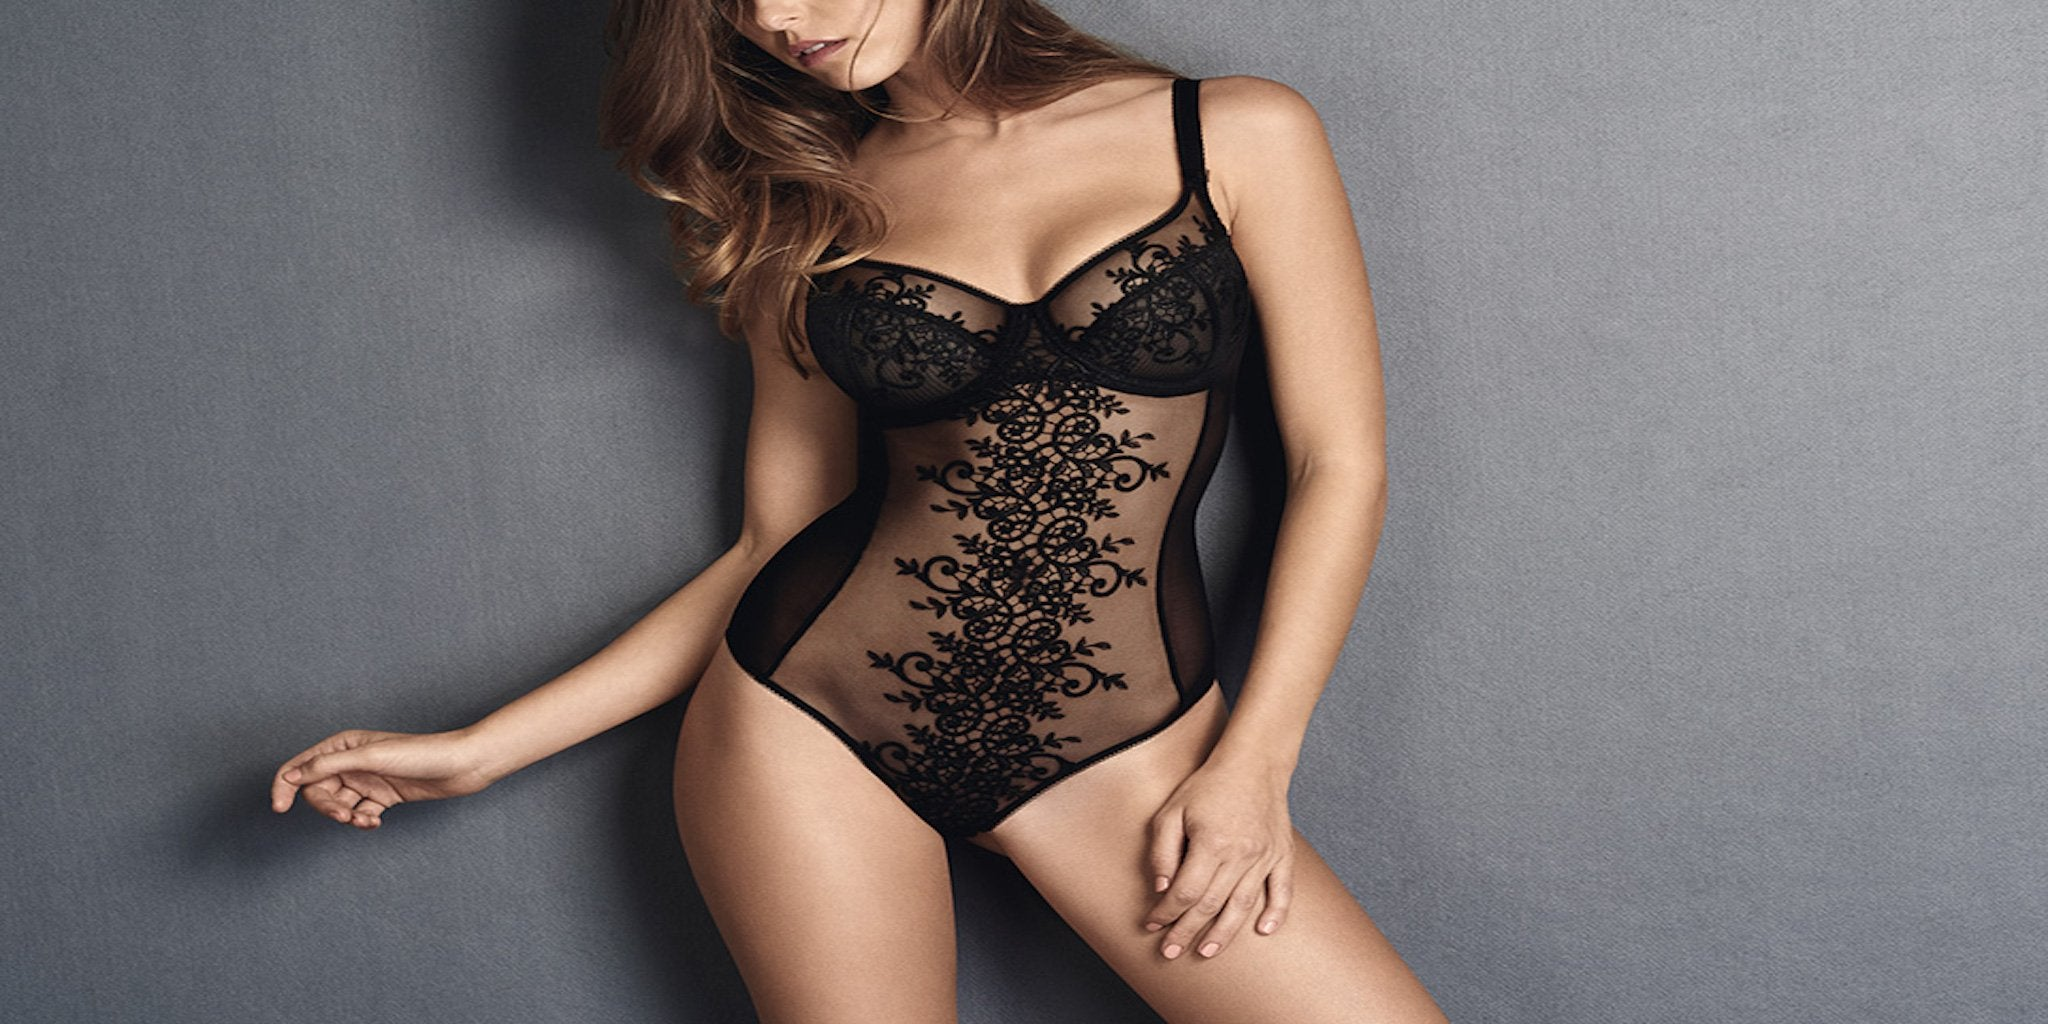 Empreinte apolline lingerie collection